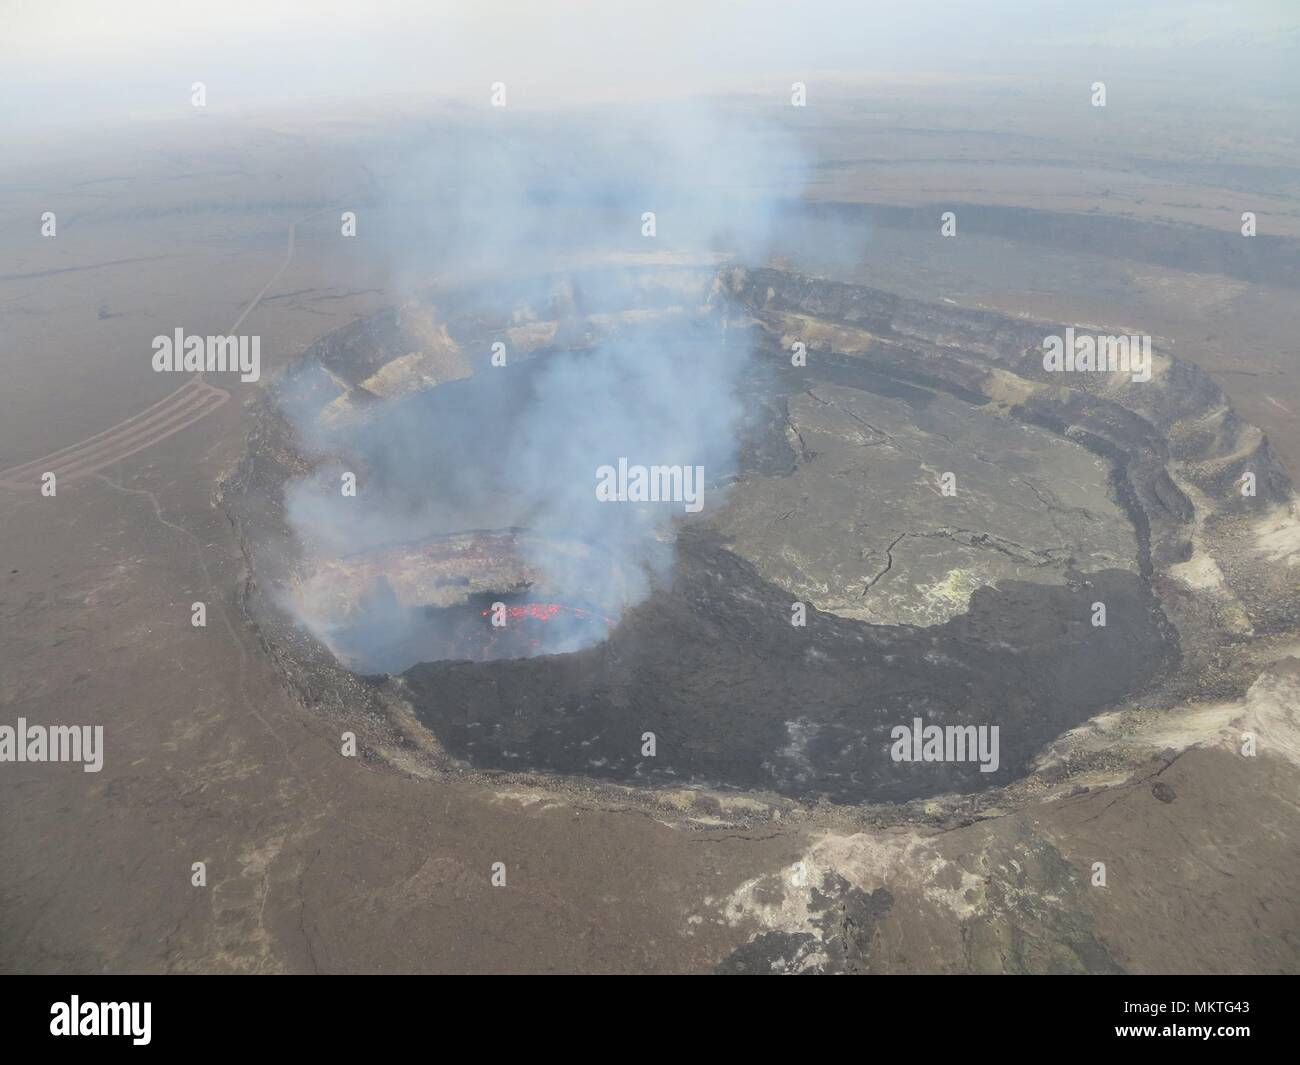 Smoke and lava rises from the Kilauea volcano following a 6.9-magnitude earthquake May 4, 2018 in Leilani Estates, Hawaii. The recent eruption continues destroying homes, forcing evacuations and spewing lava and poison gas on the Big Island of Hawaii. - Stock Image